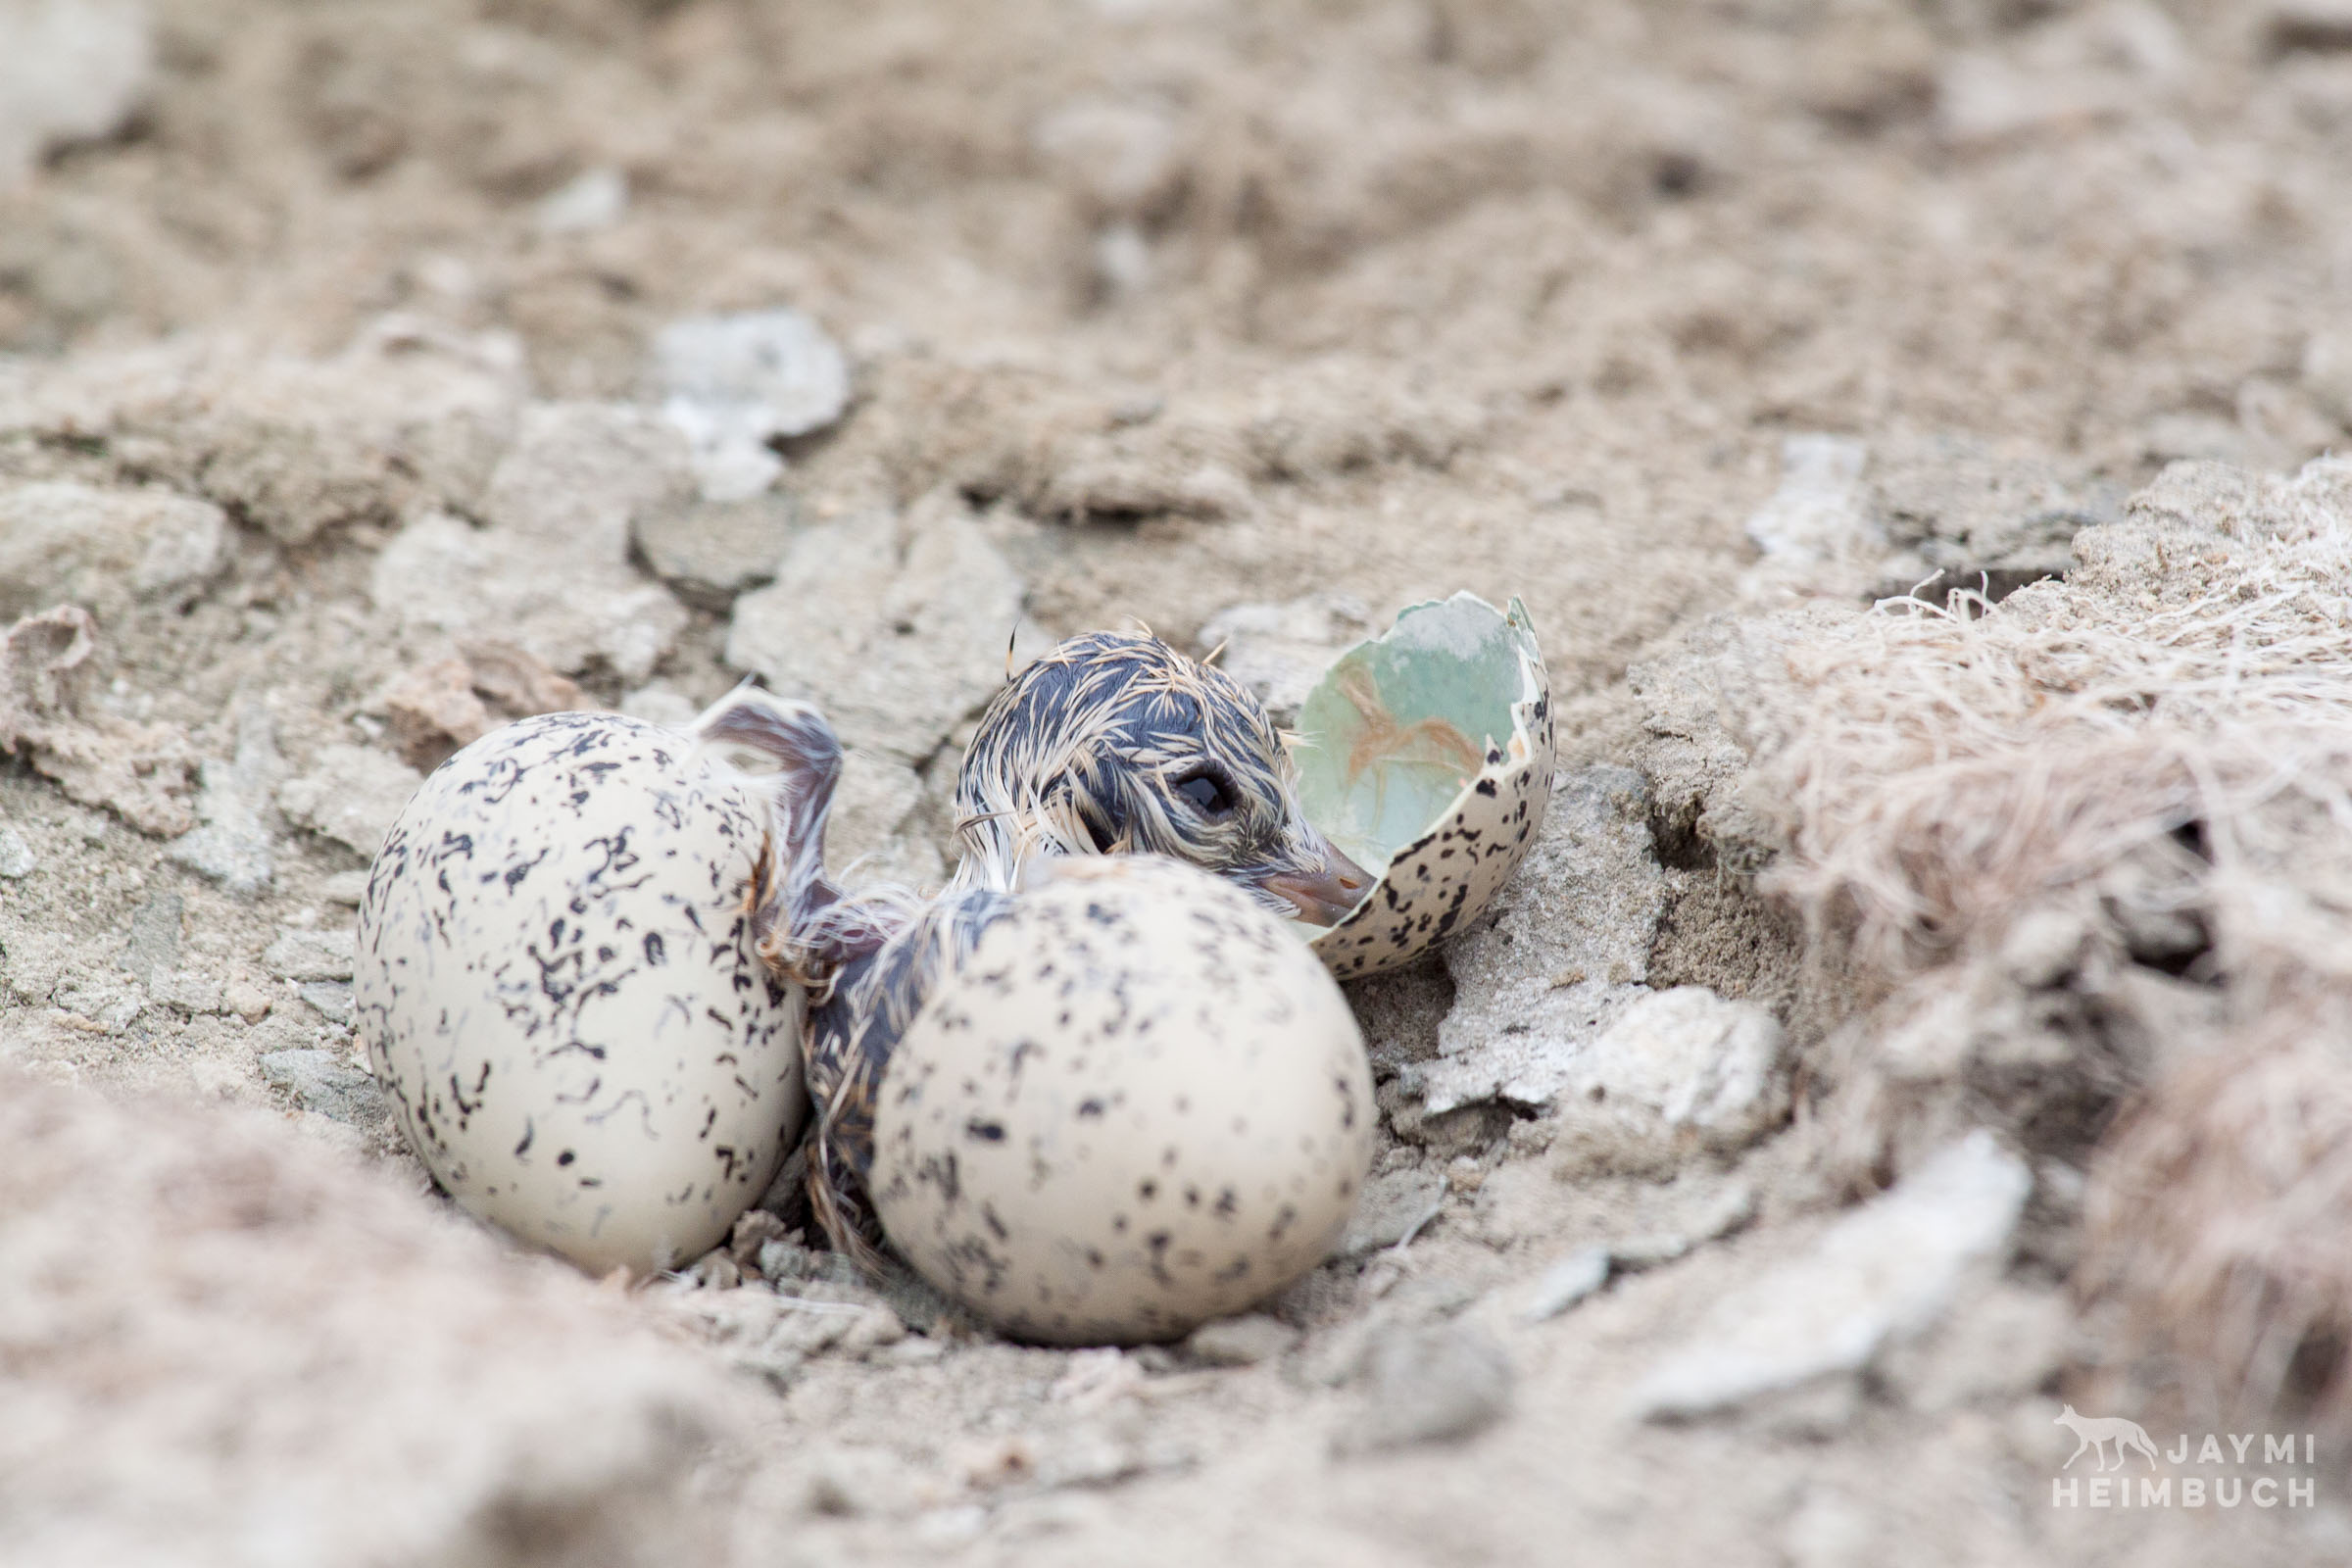 Western snowy plover (Charadrius nivosus) chick hatching from egg, Milpitas, California